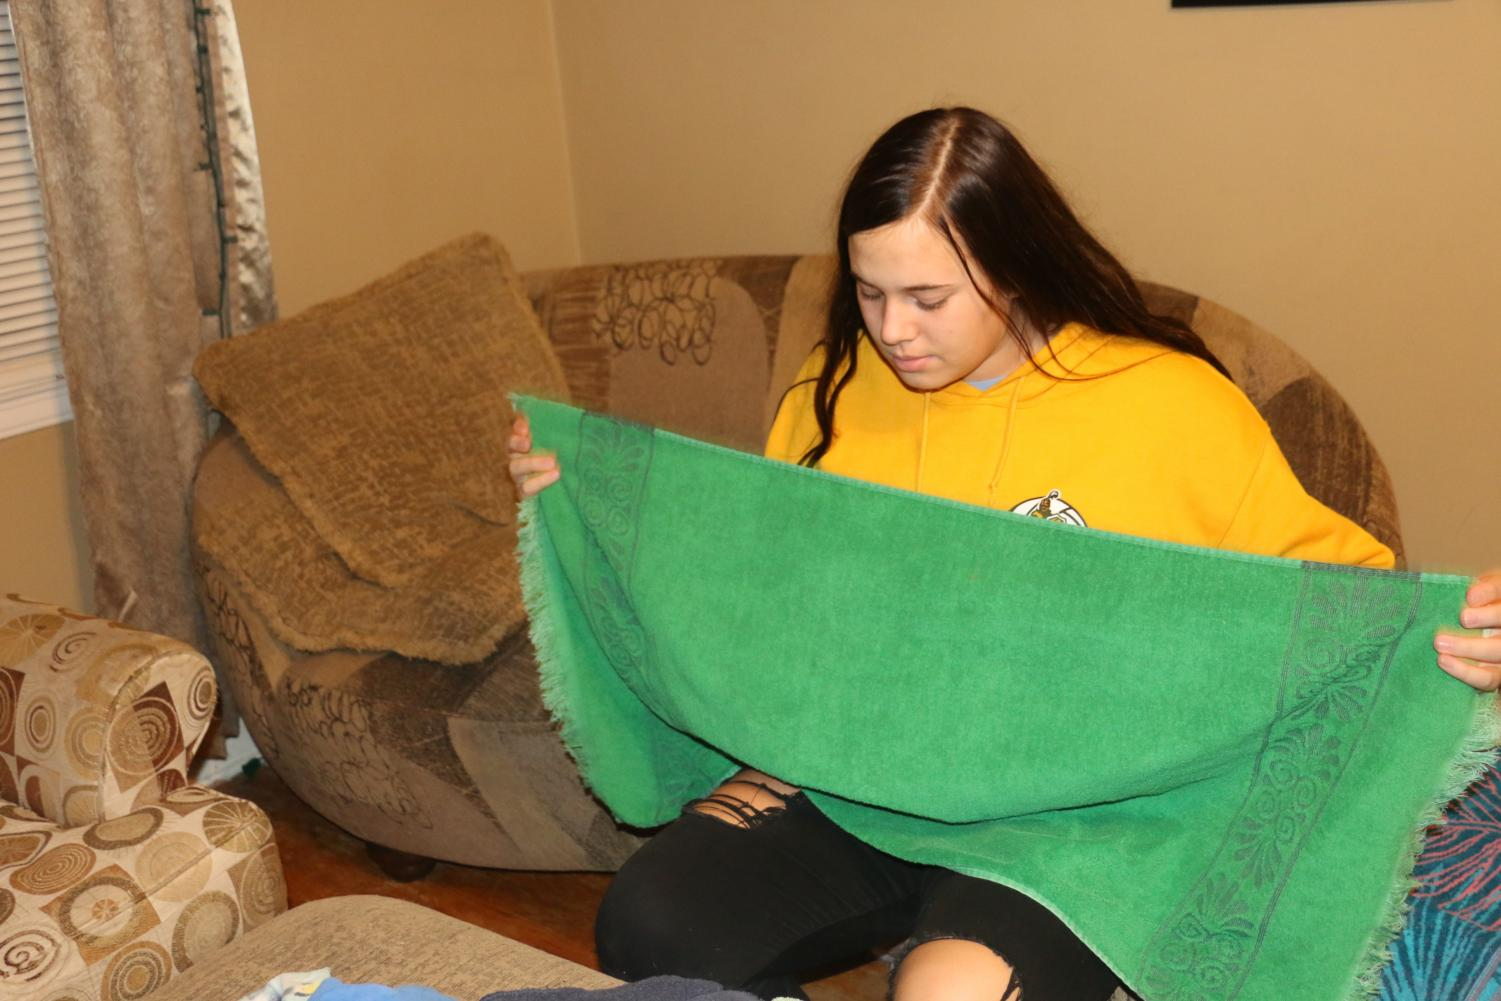 Sophomore Hillary Menghini does laundry at home. Chores are just a small part of this teens busy day.